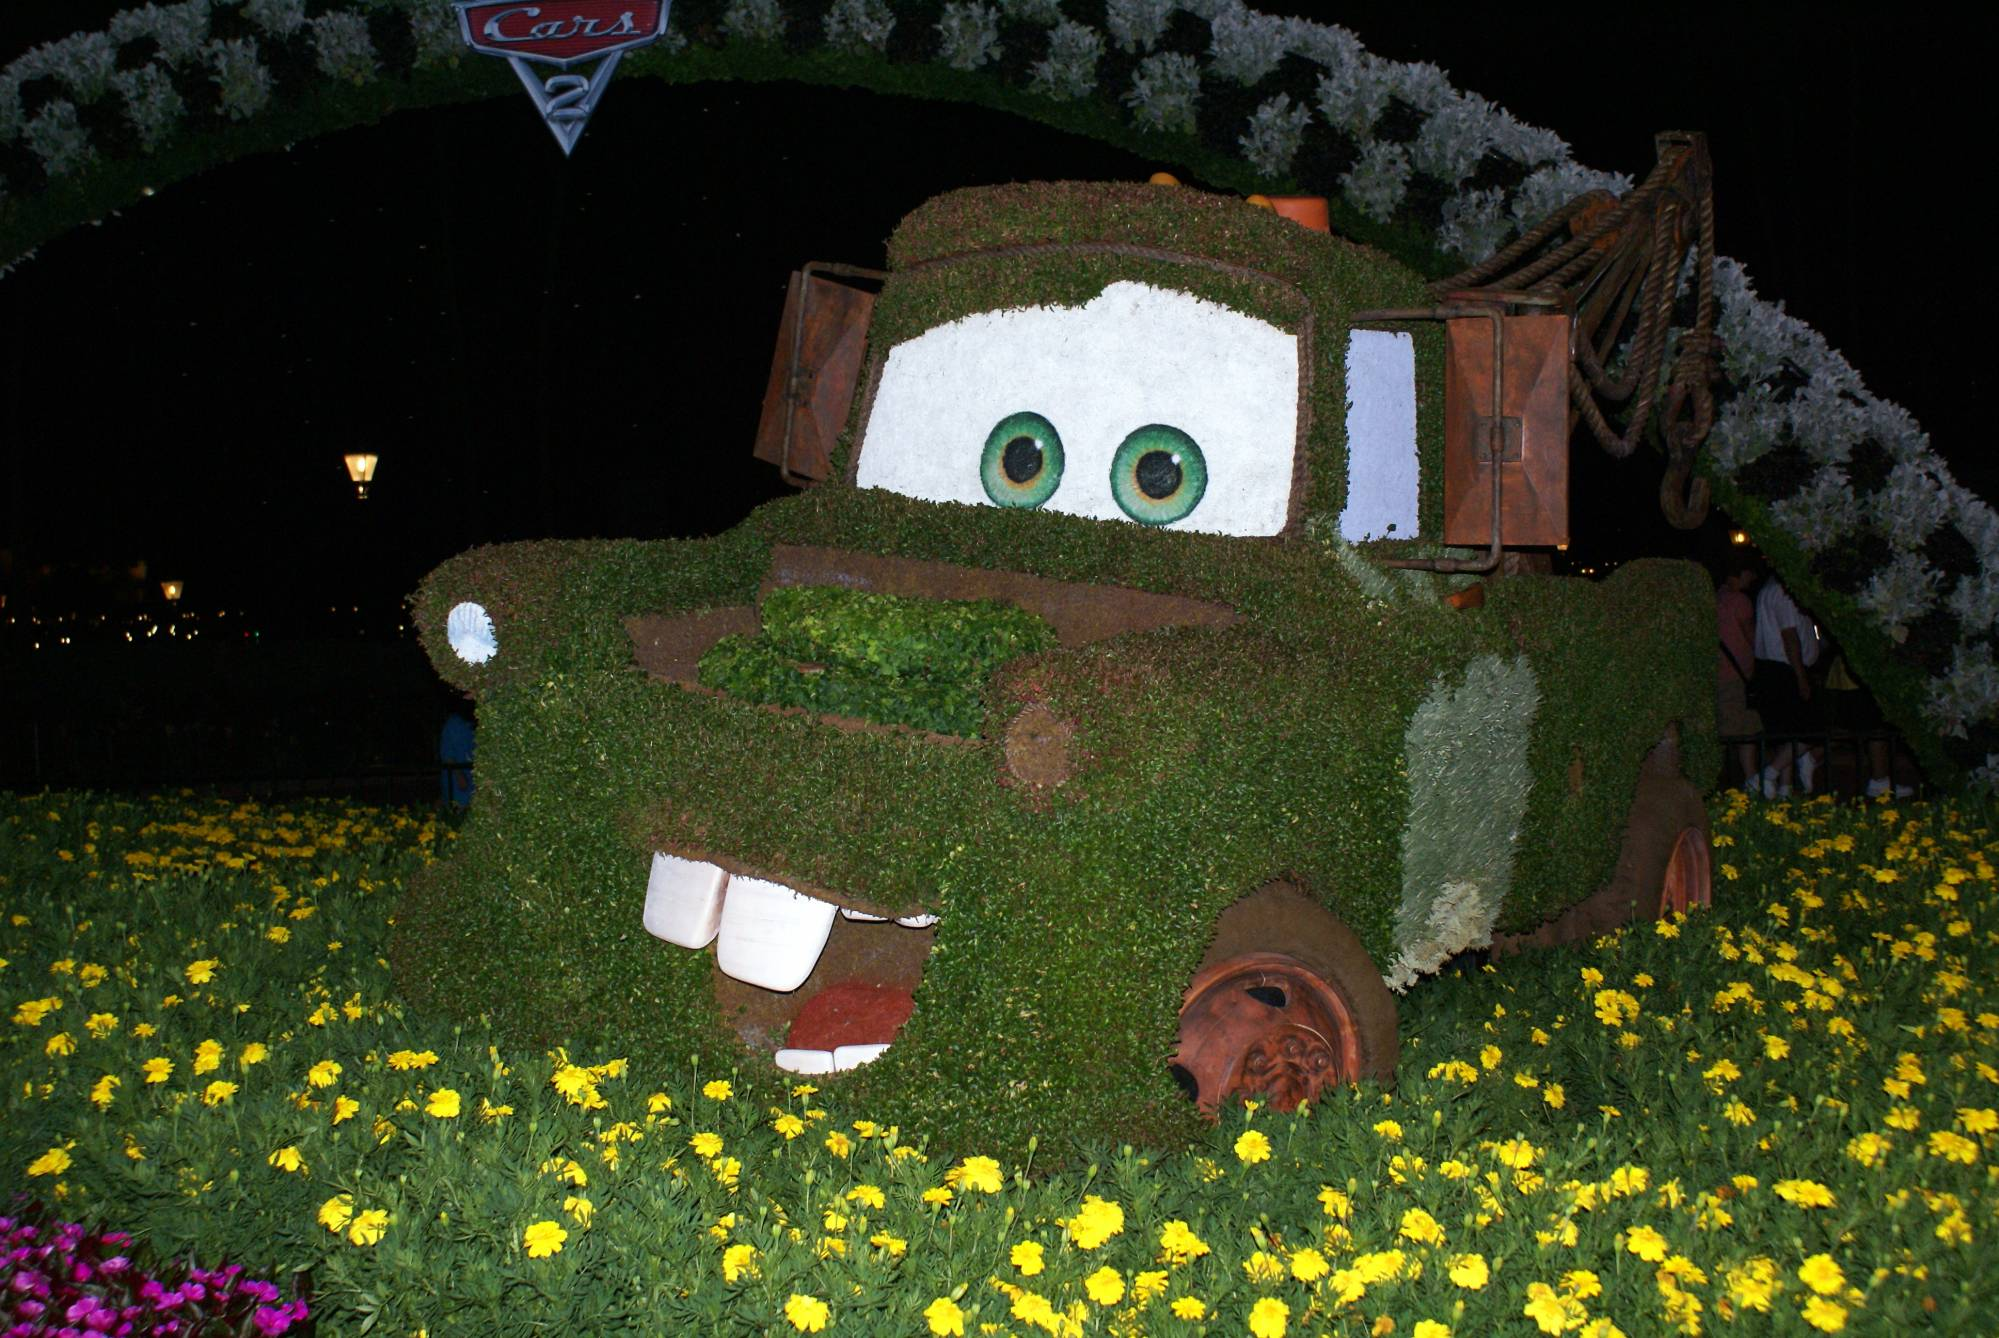 Mater Topiary at Epcot at Night